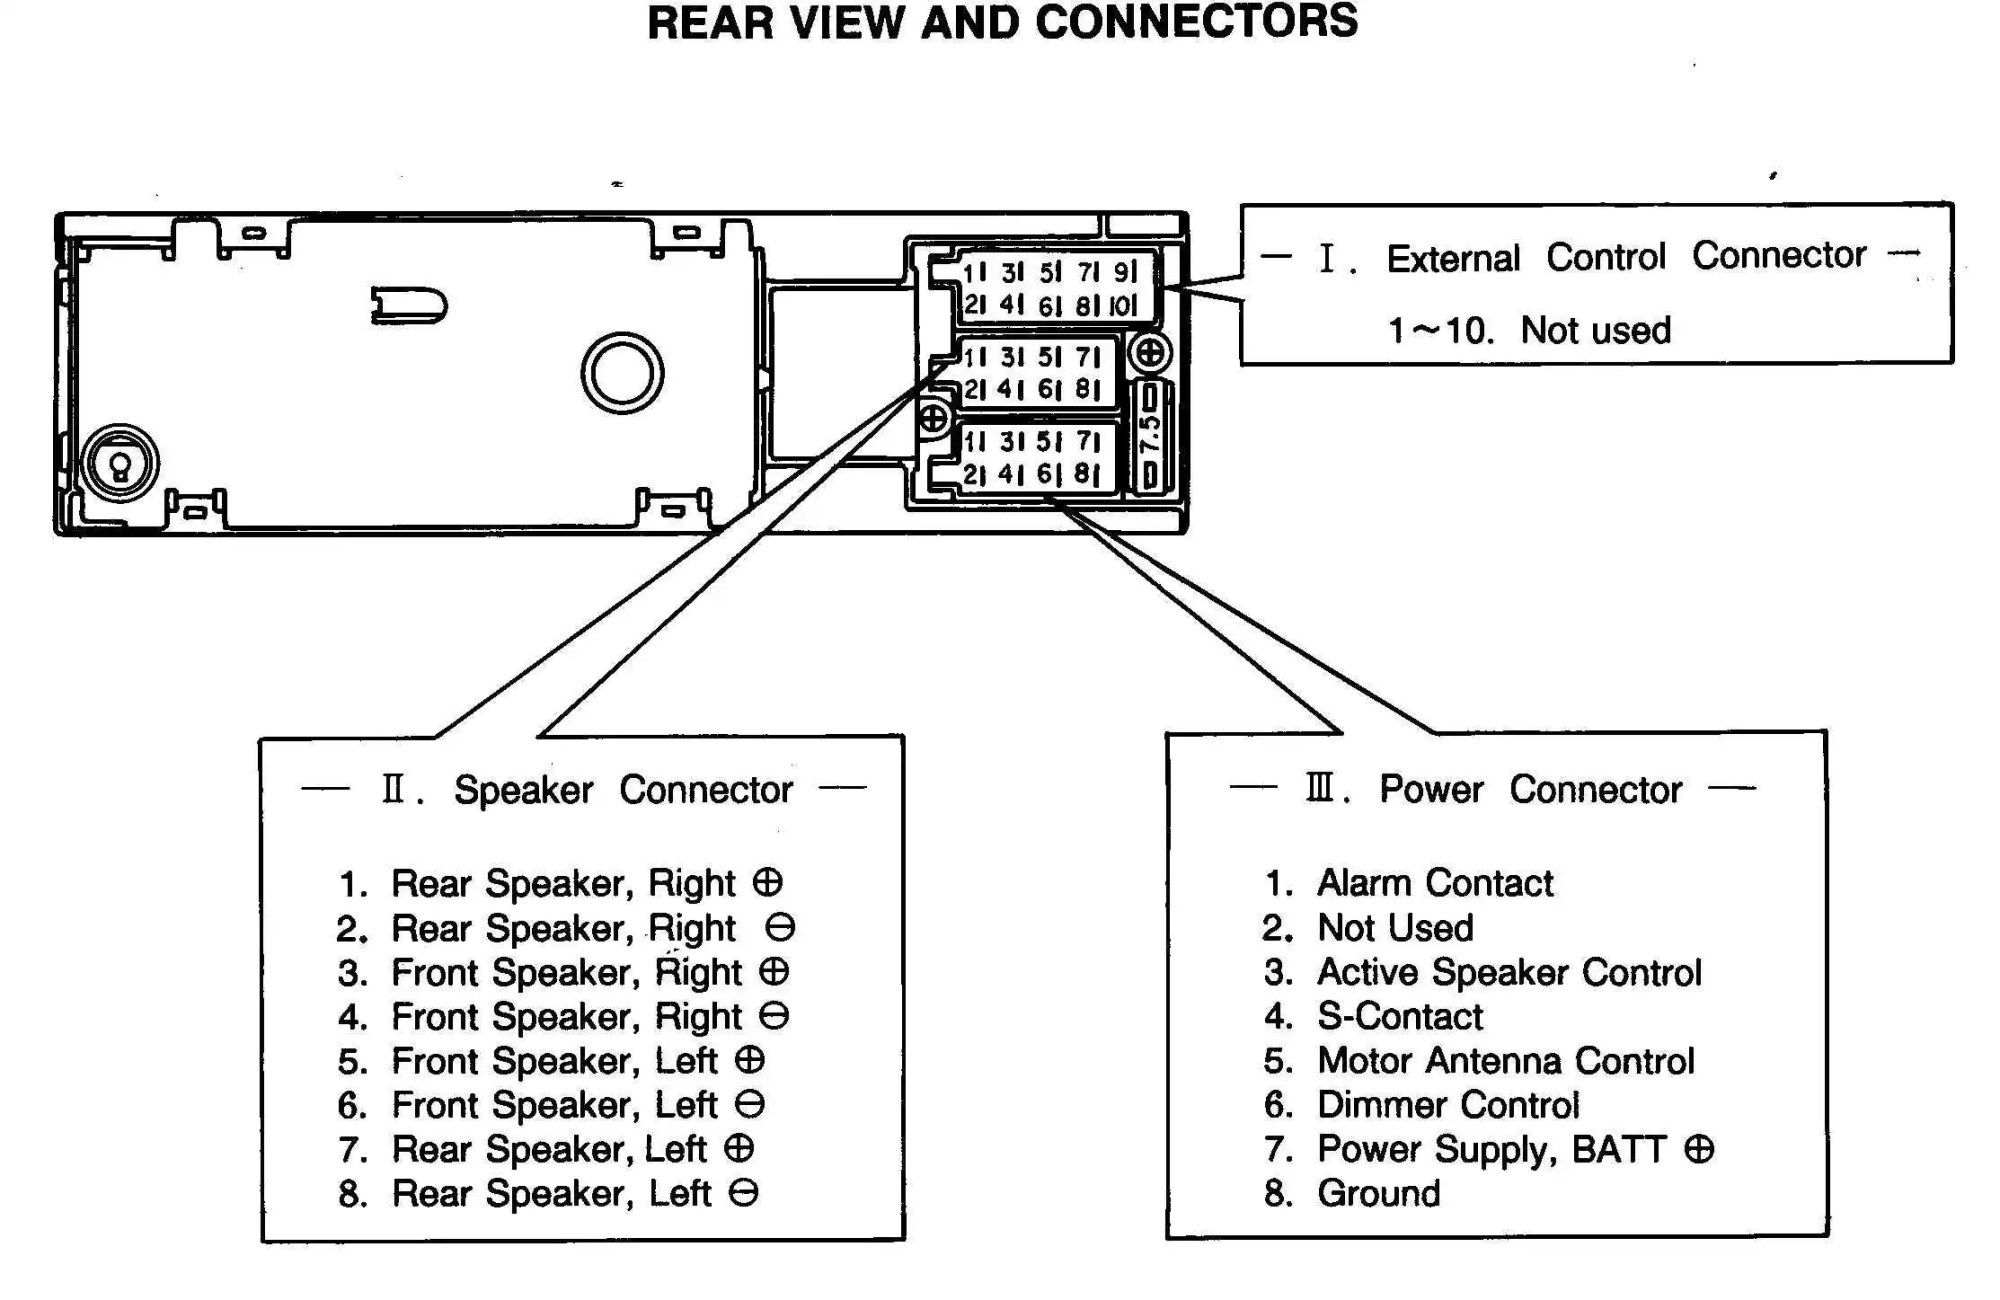 hight resolution of wiring diagram for mini cooper stereo data wiring diagram today cooper switch wiring diagram 2003 mini cooper audio wiring diagram